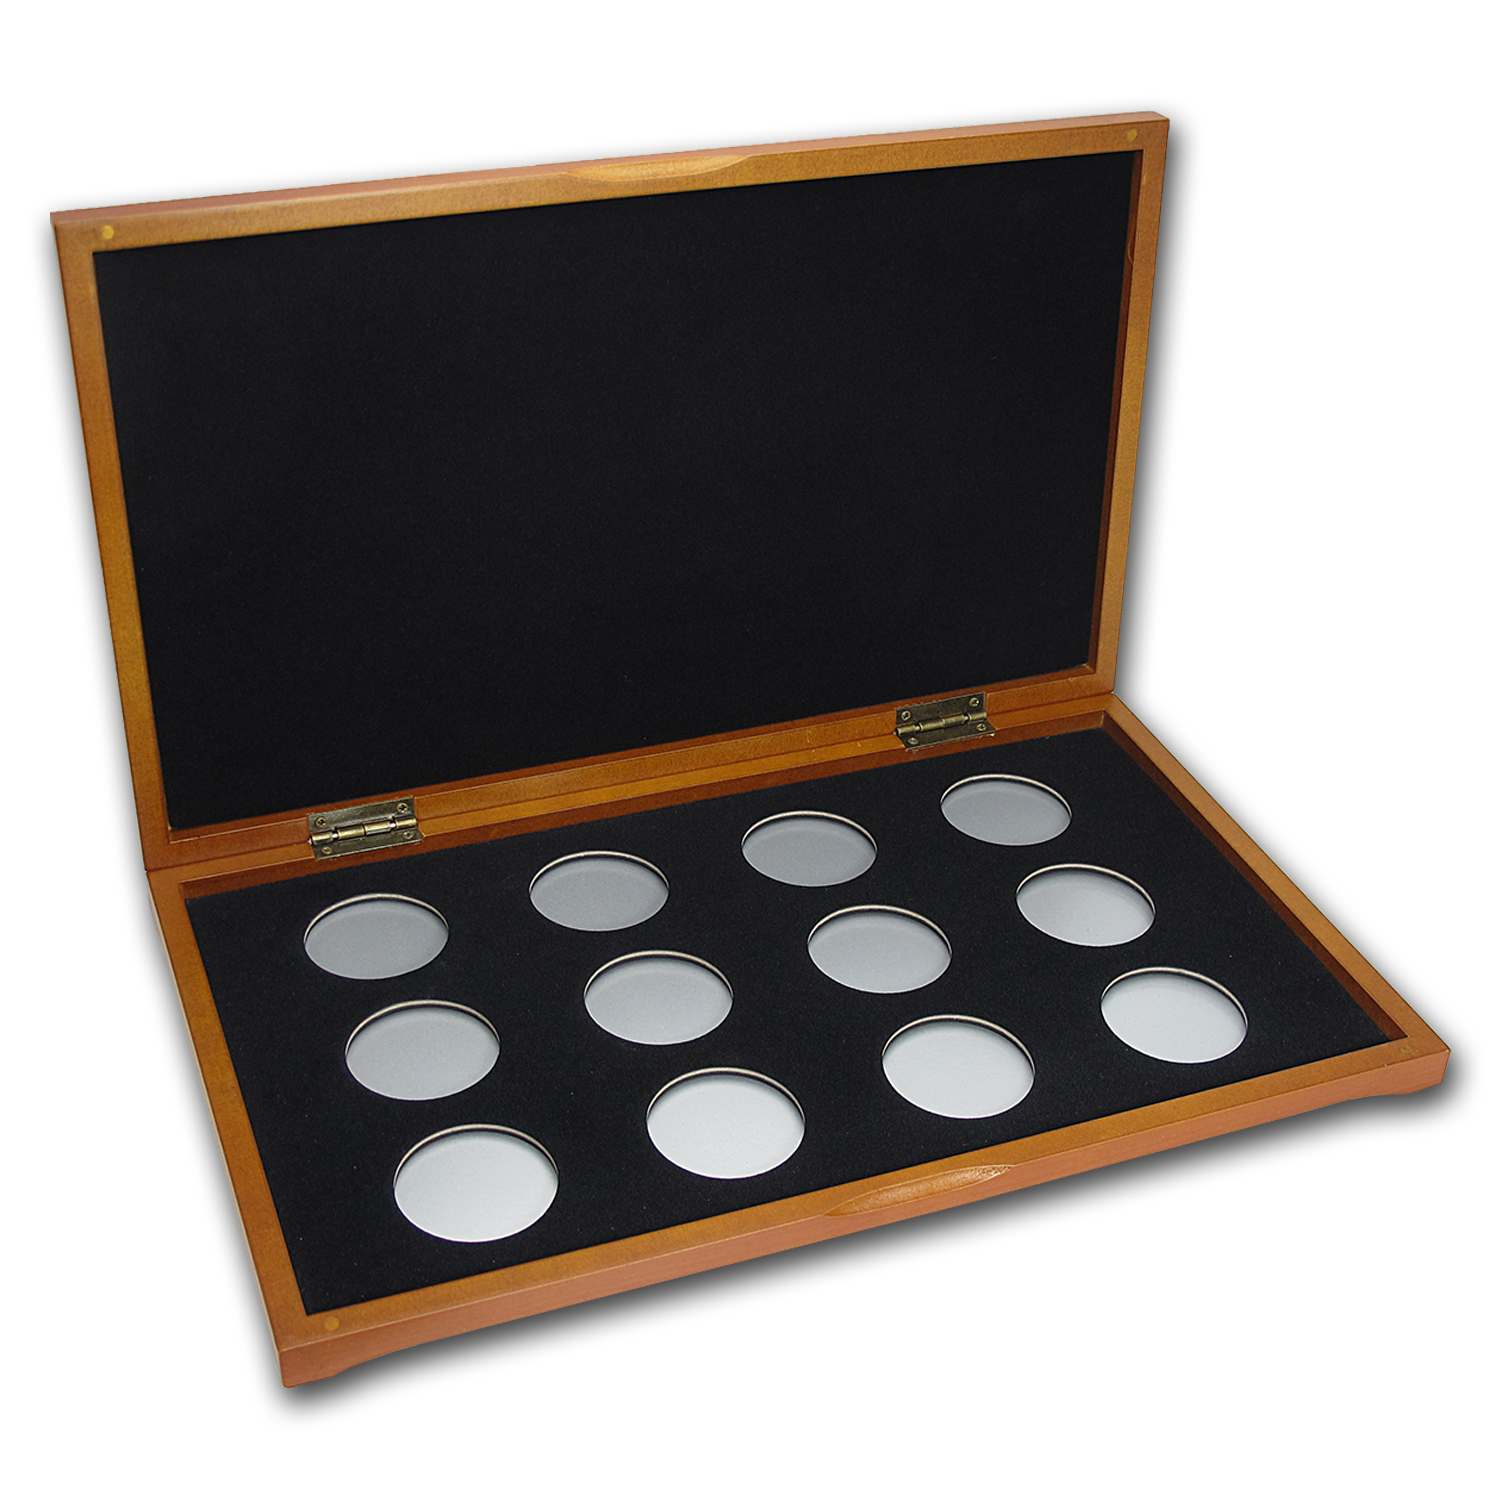 Lunar Series I (1 oz Silver) 12 coin Wood Presentation Box